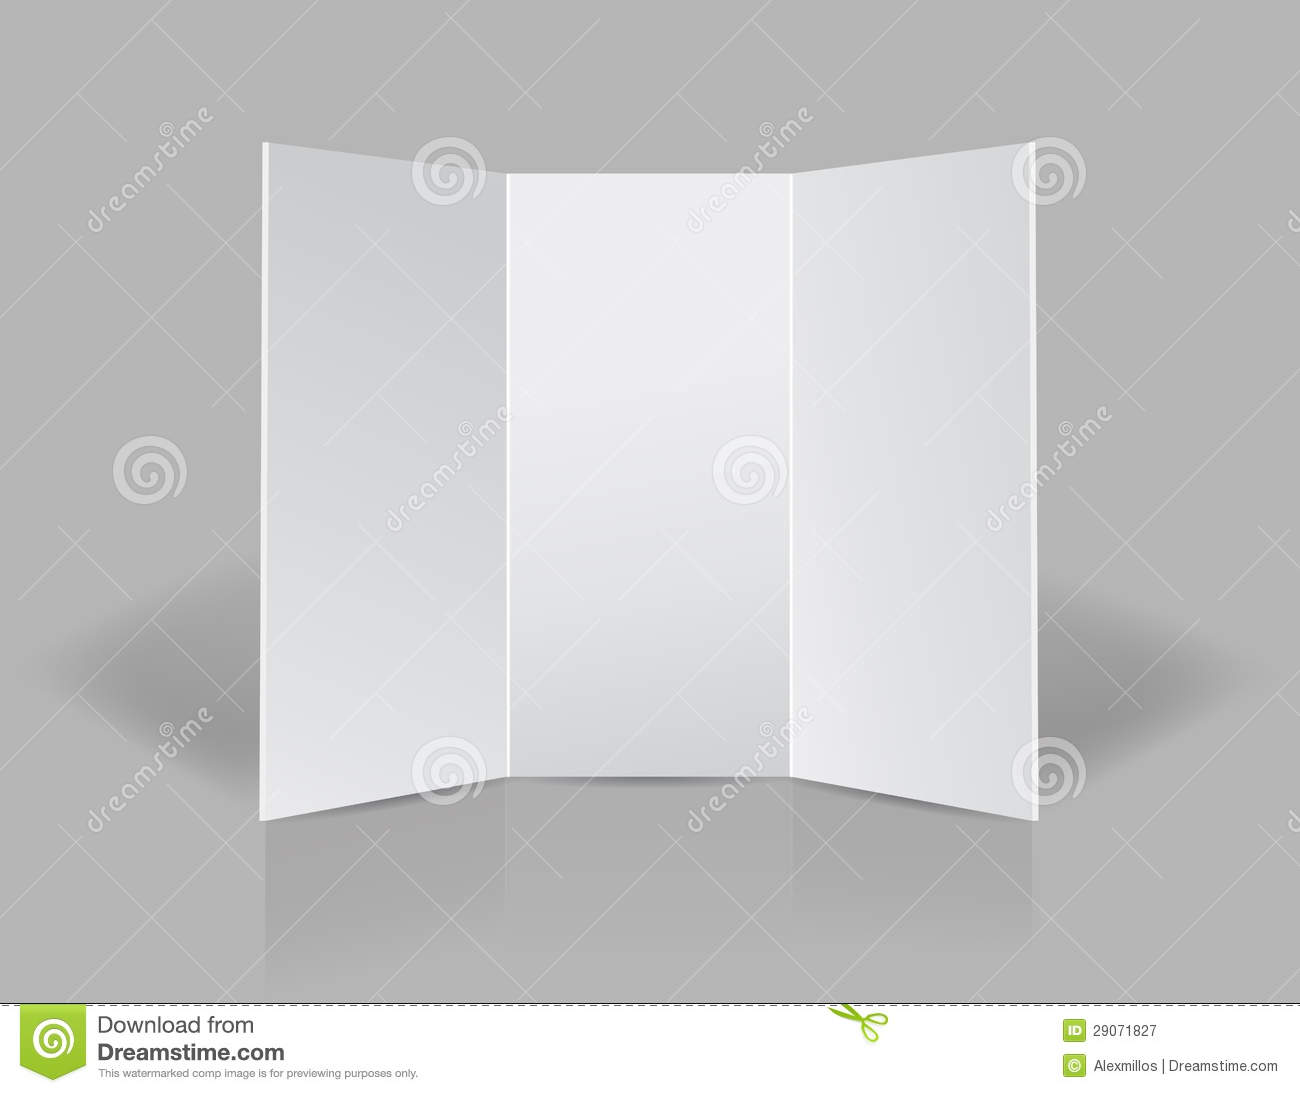 blank tri fold brochure template - tri fold presentation blank leaflet stock illustration